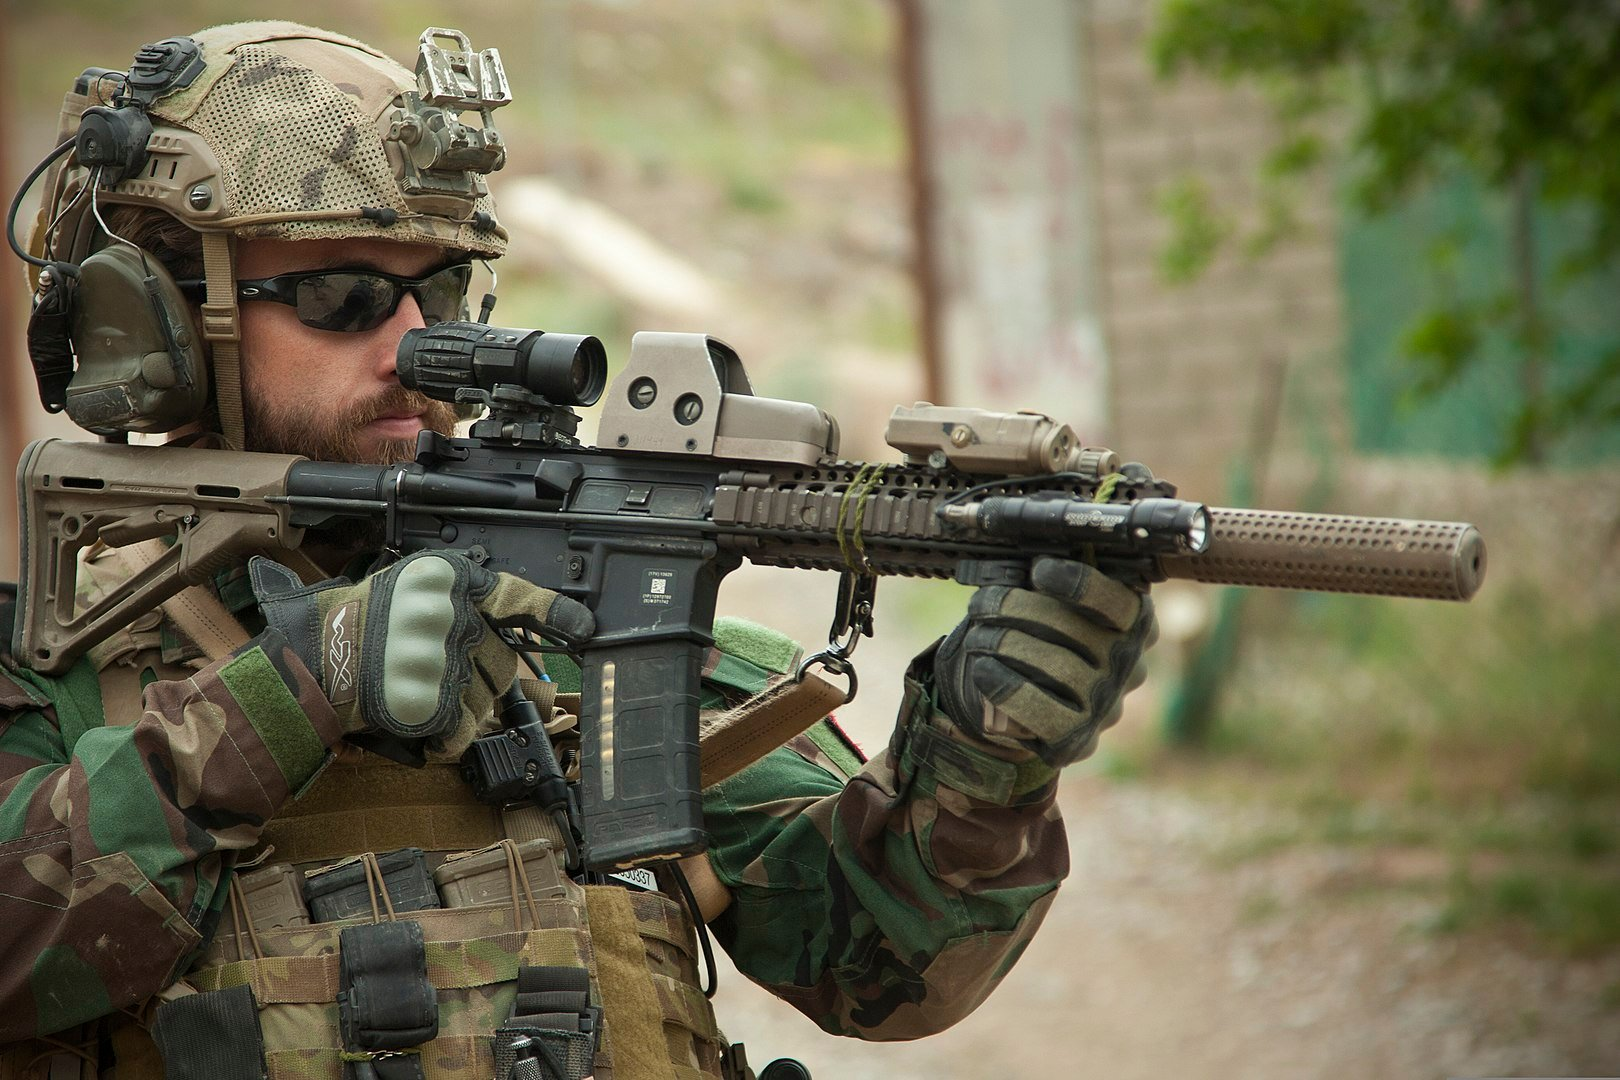 Marine Raiders, Navy SEALs and PJs: What You Need To Now About Air Force, Marine and Navy Special Forces